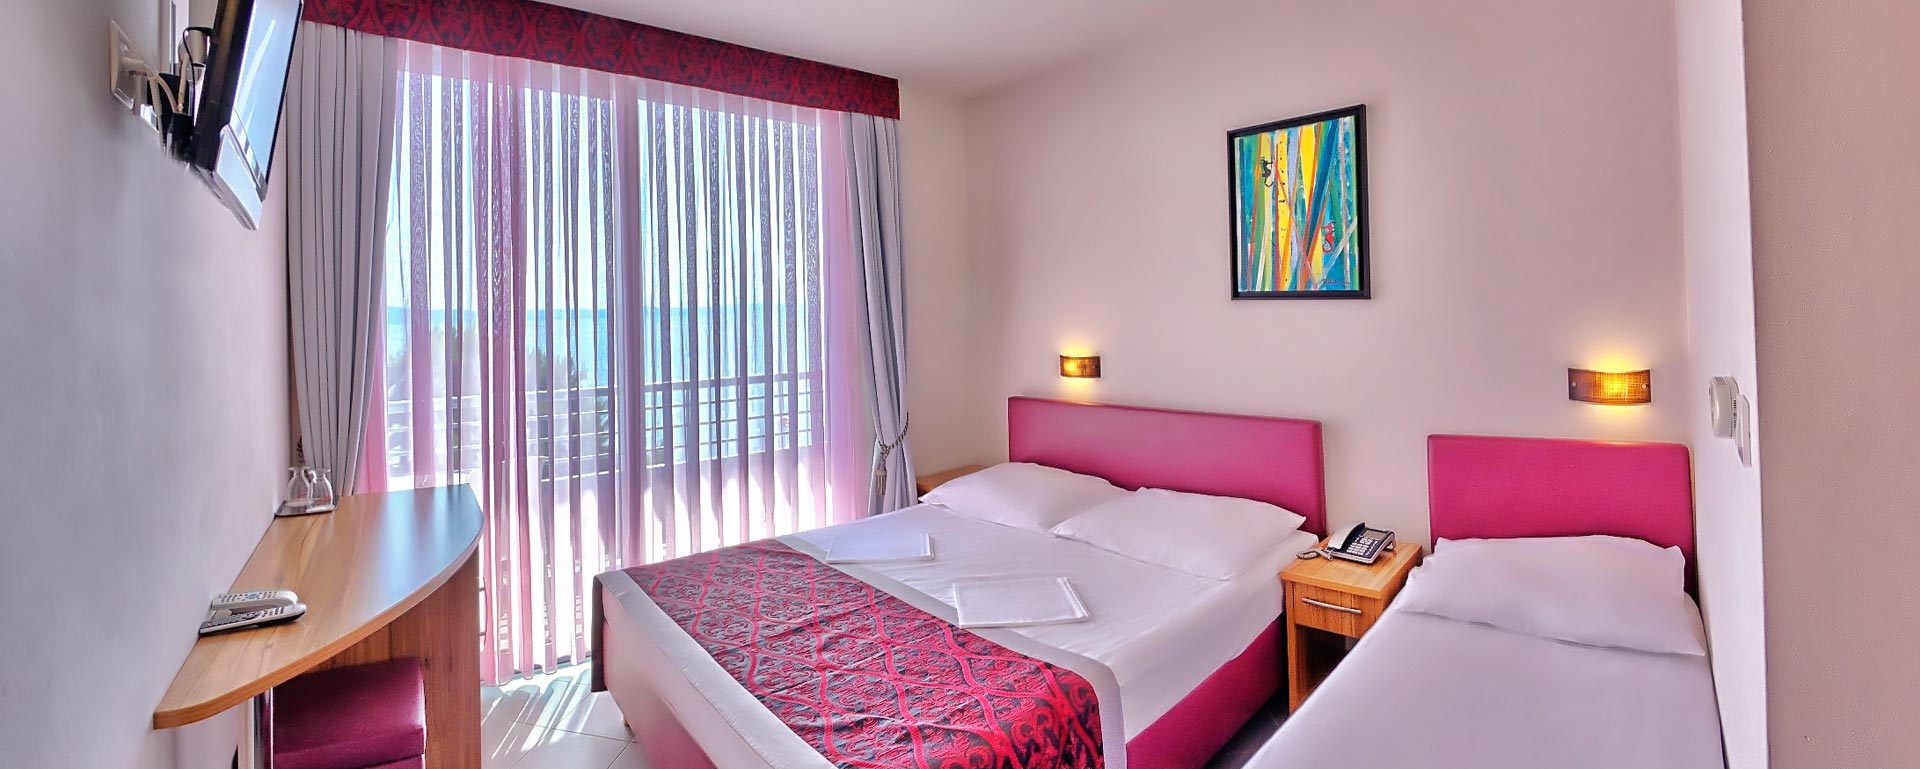 Double Bedroom Hotel Sirena